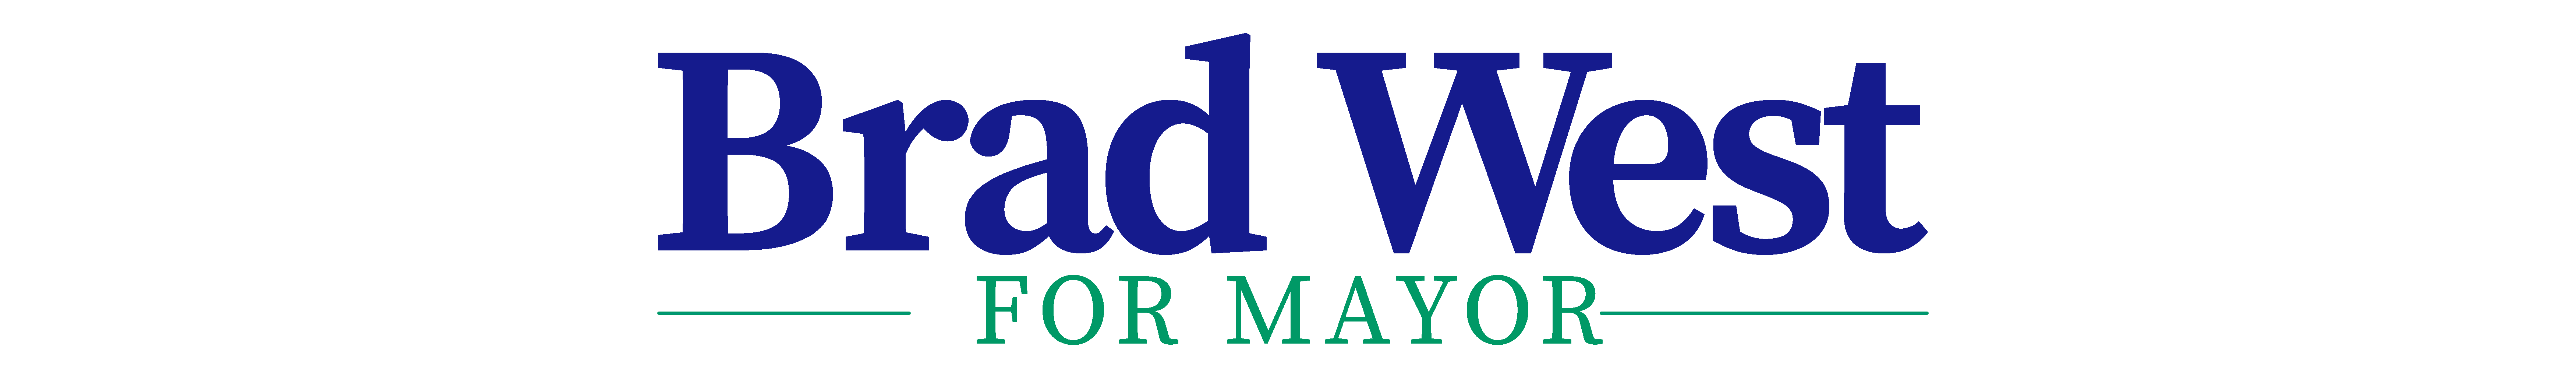 Brad West for Mayor